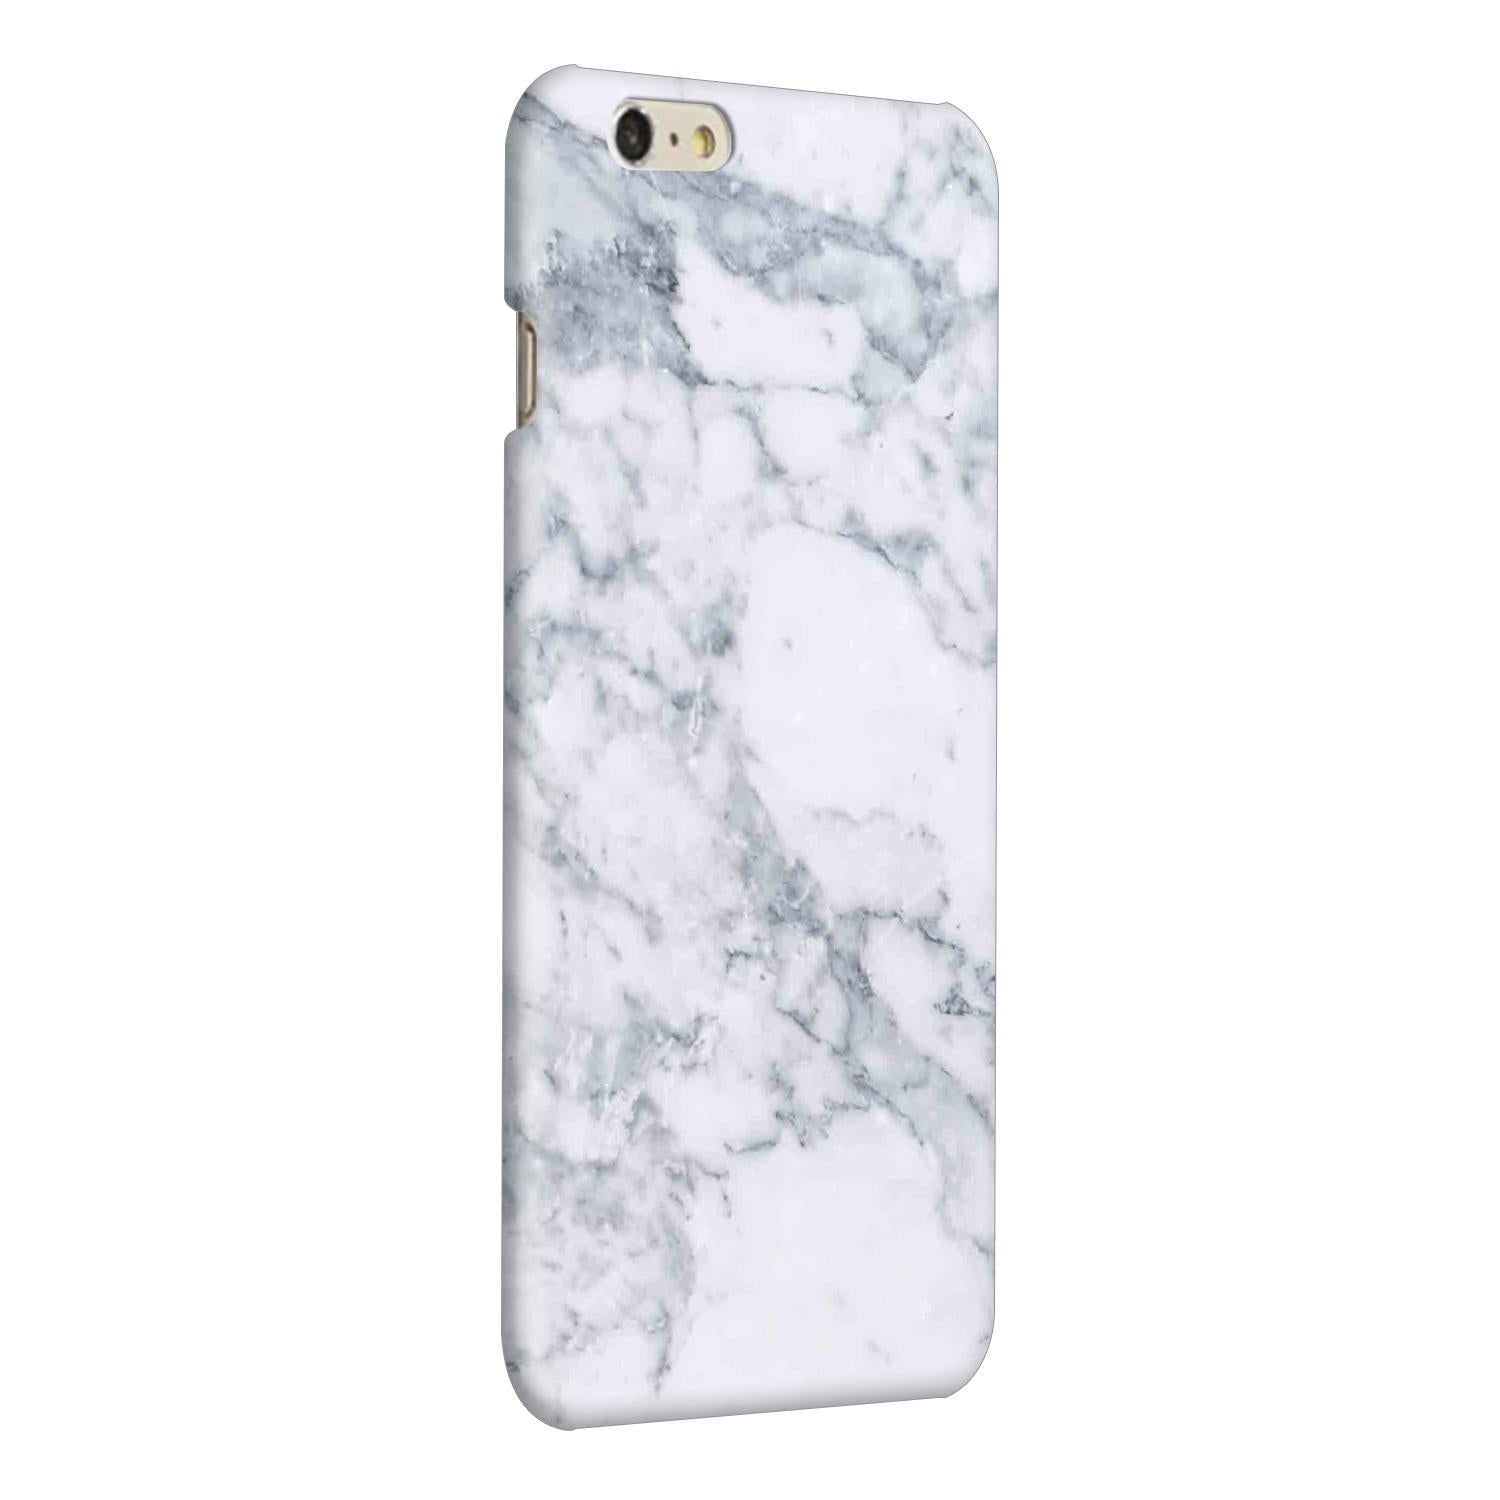 Chic White Marble iPhone 6 Plus Mobile Cover Case